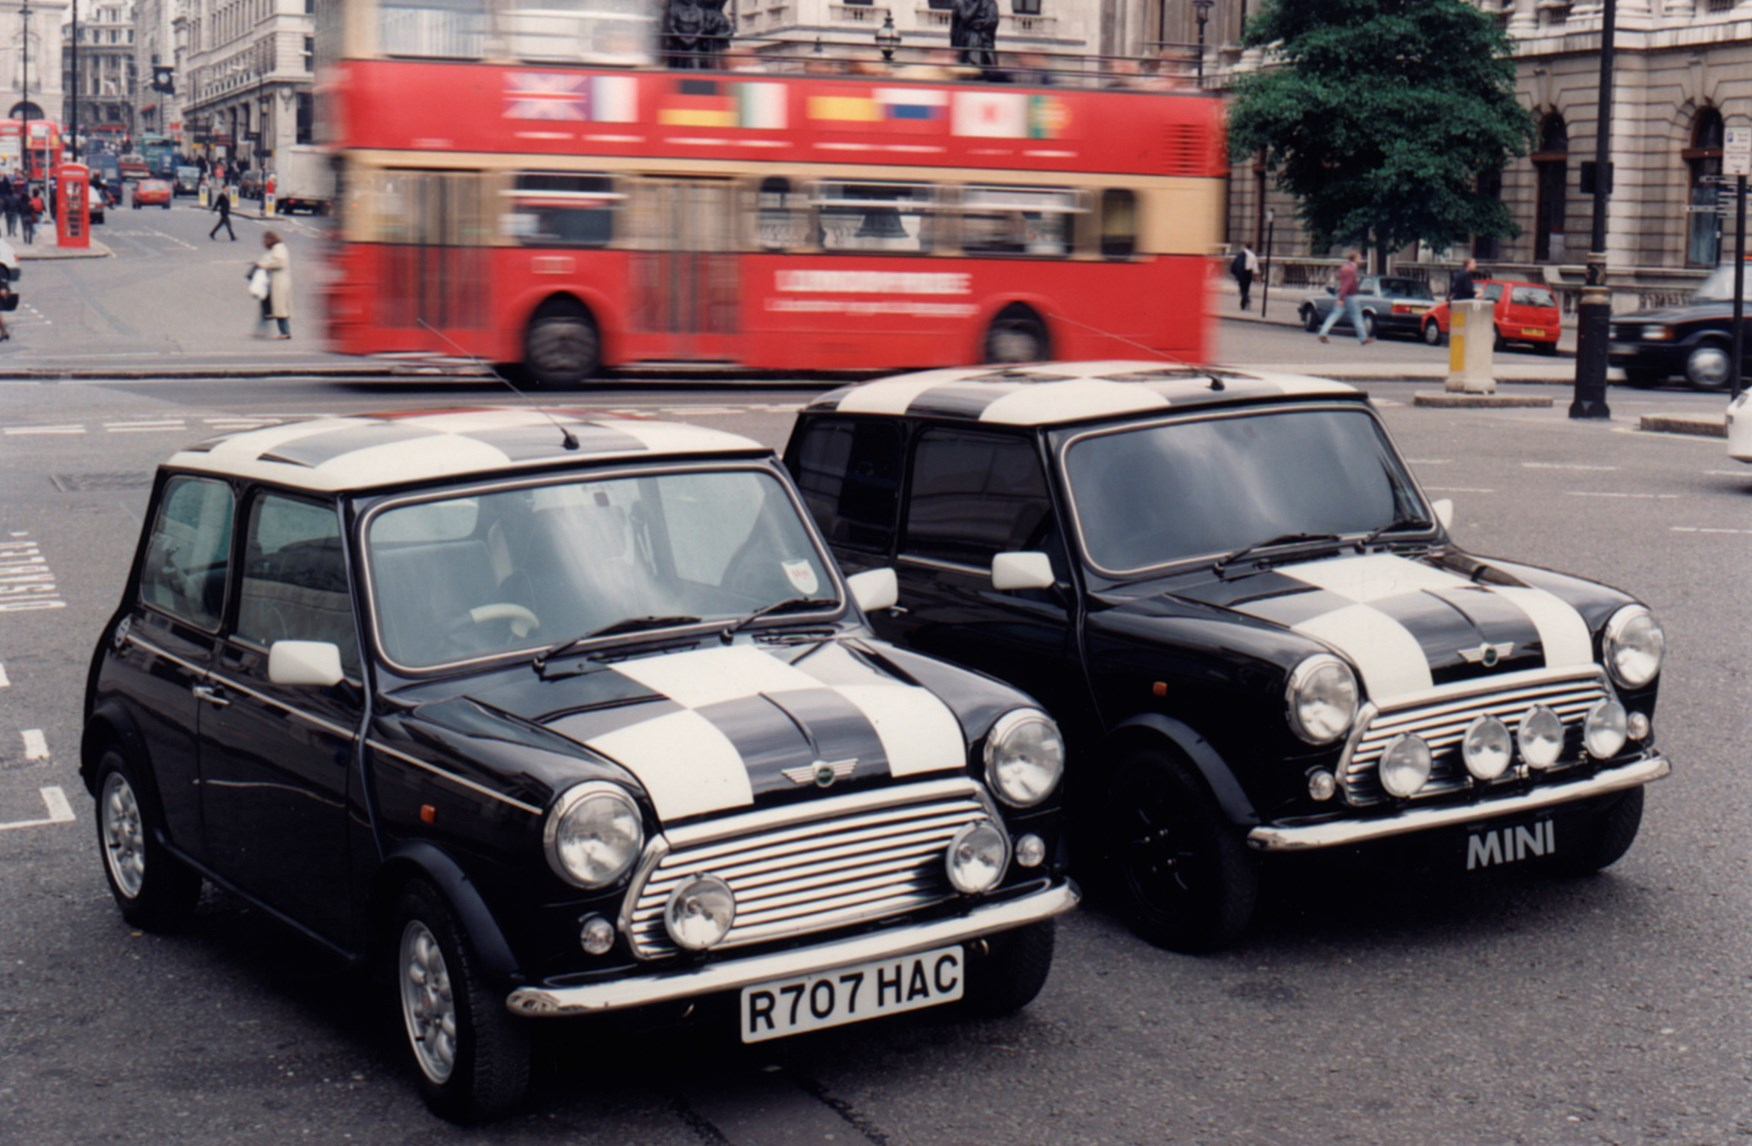 Used Rover Mini Saloon (1988 - 2001) Engines   Parkers